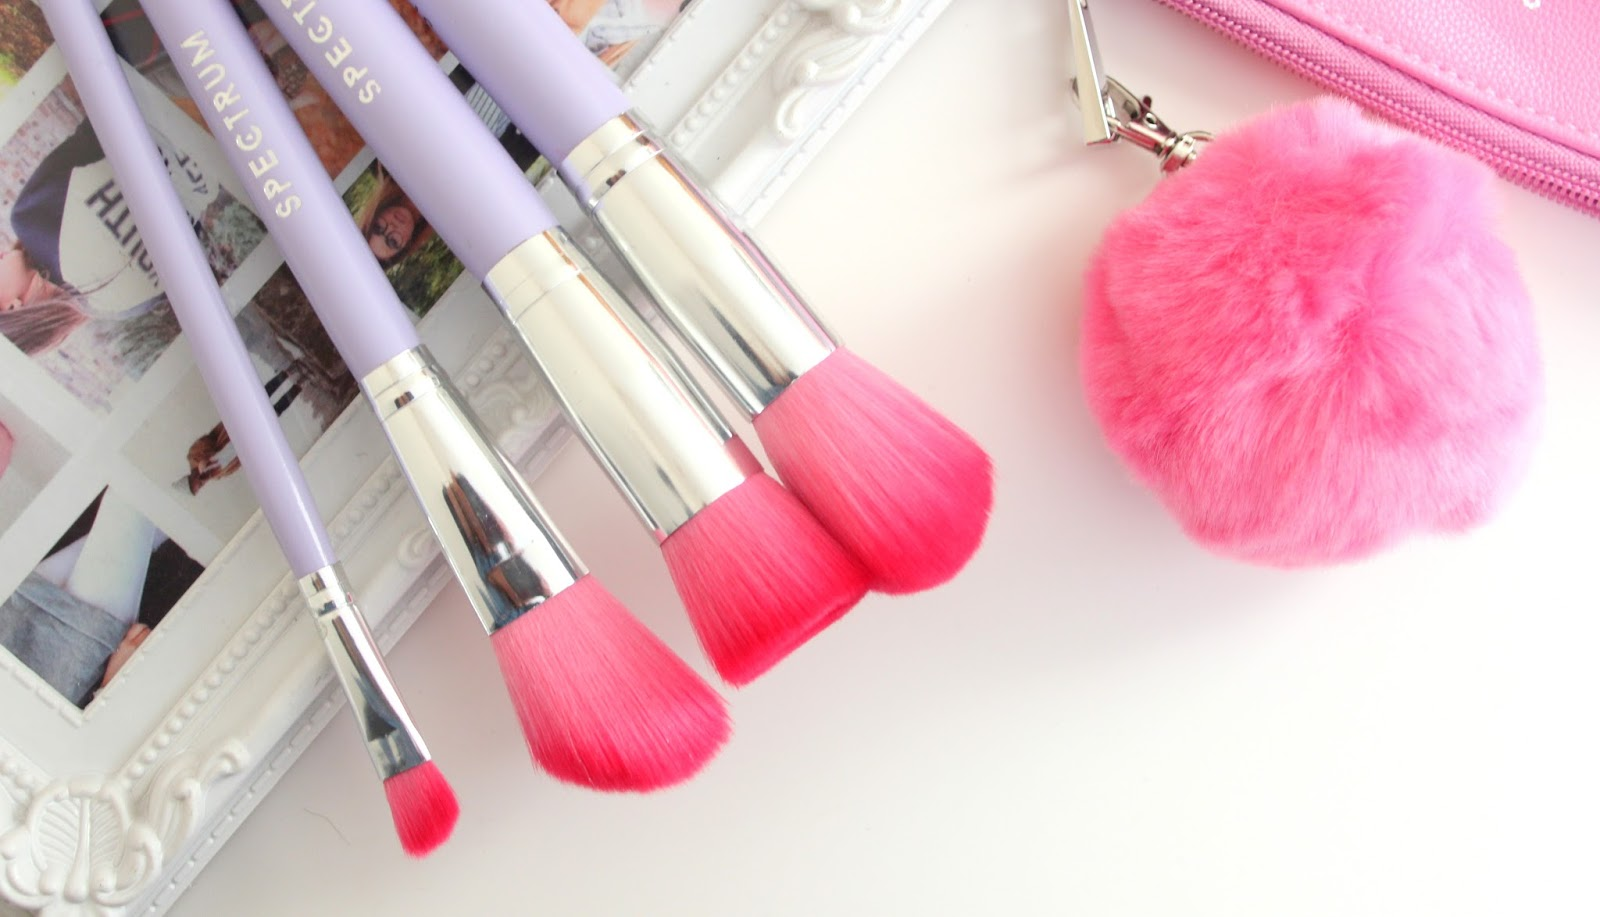 spectrum-natural-cruelty-free-makeup-brushes